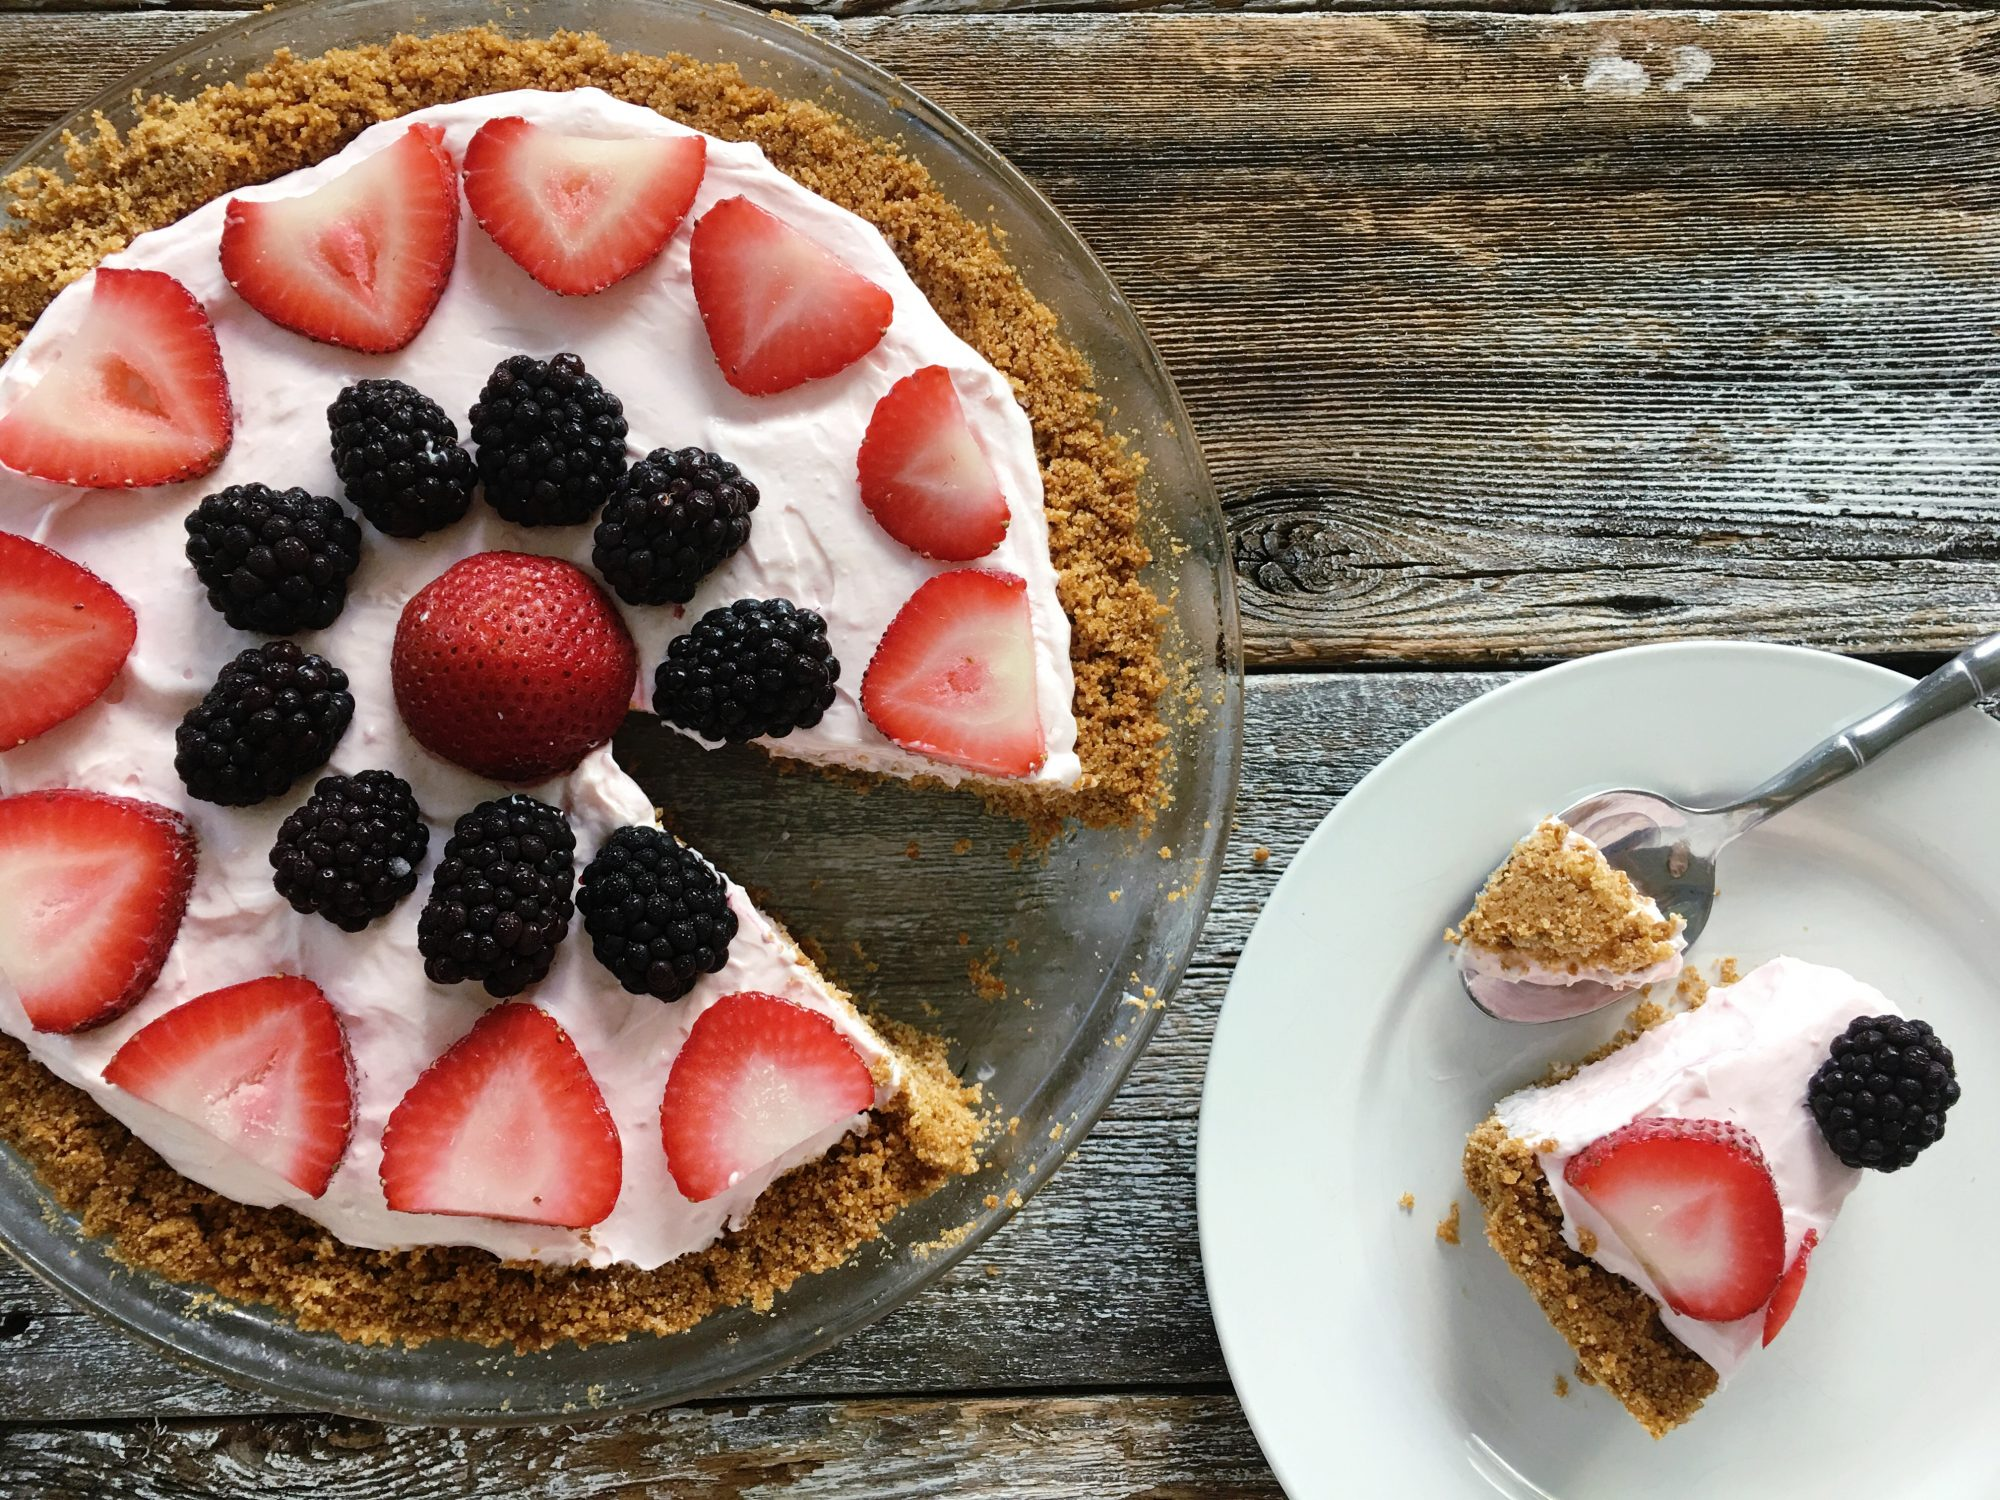 Strawberry Yogurt Cream Pie with Cereal Crust